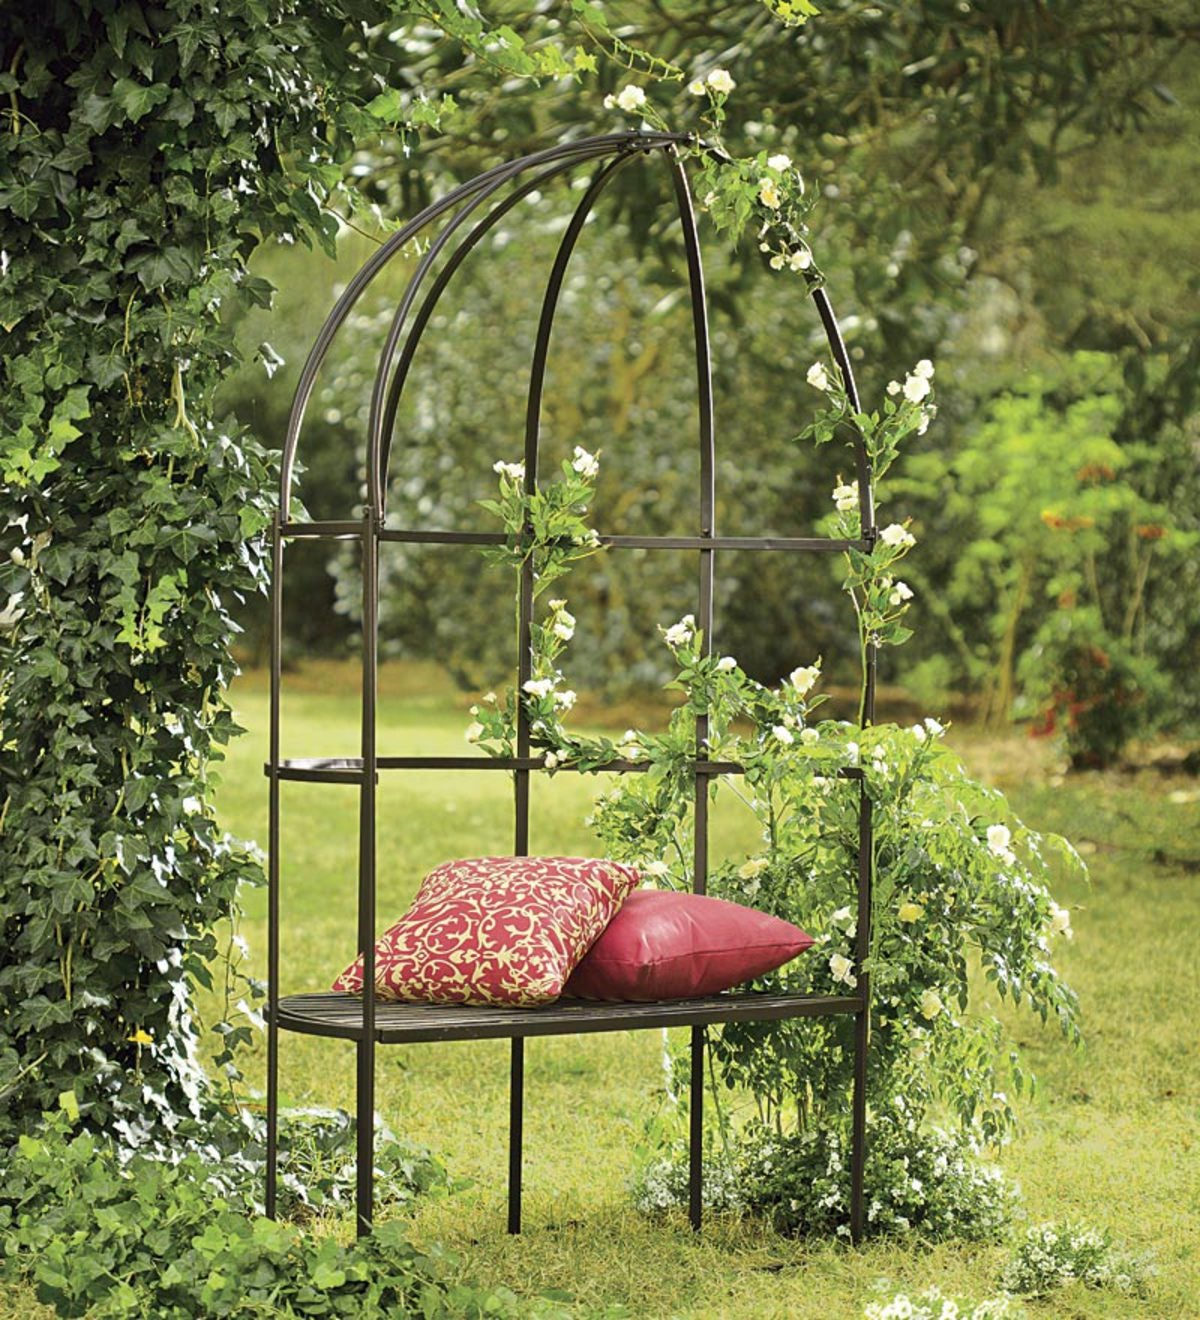 Charmant Decorative And Functional Iron Trellis Garden Bench